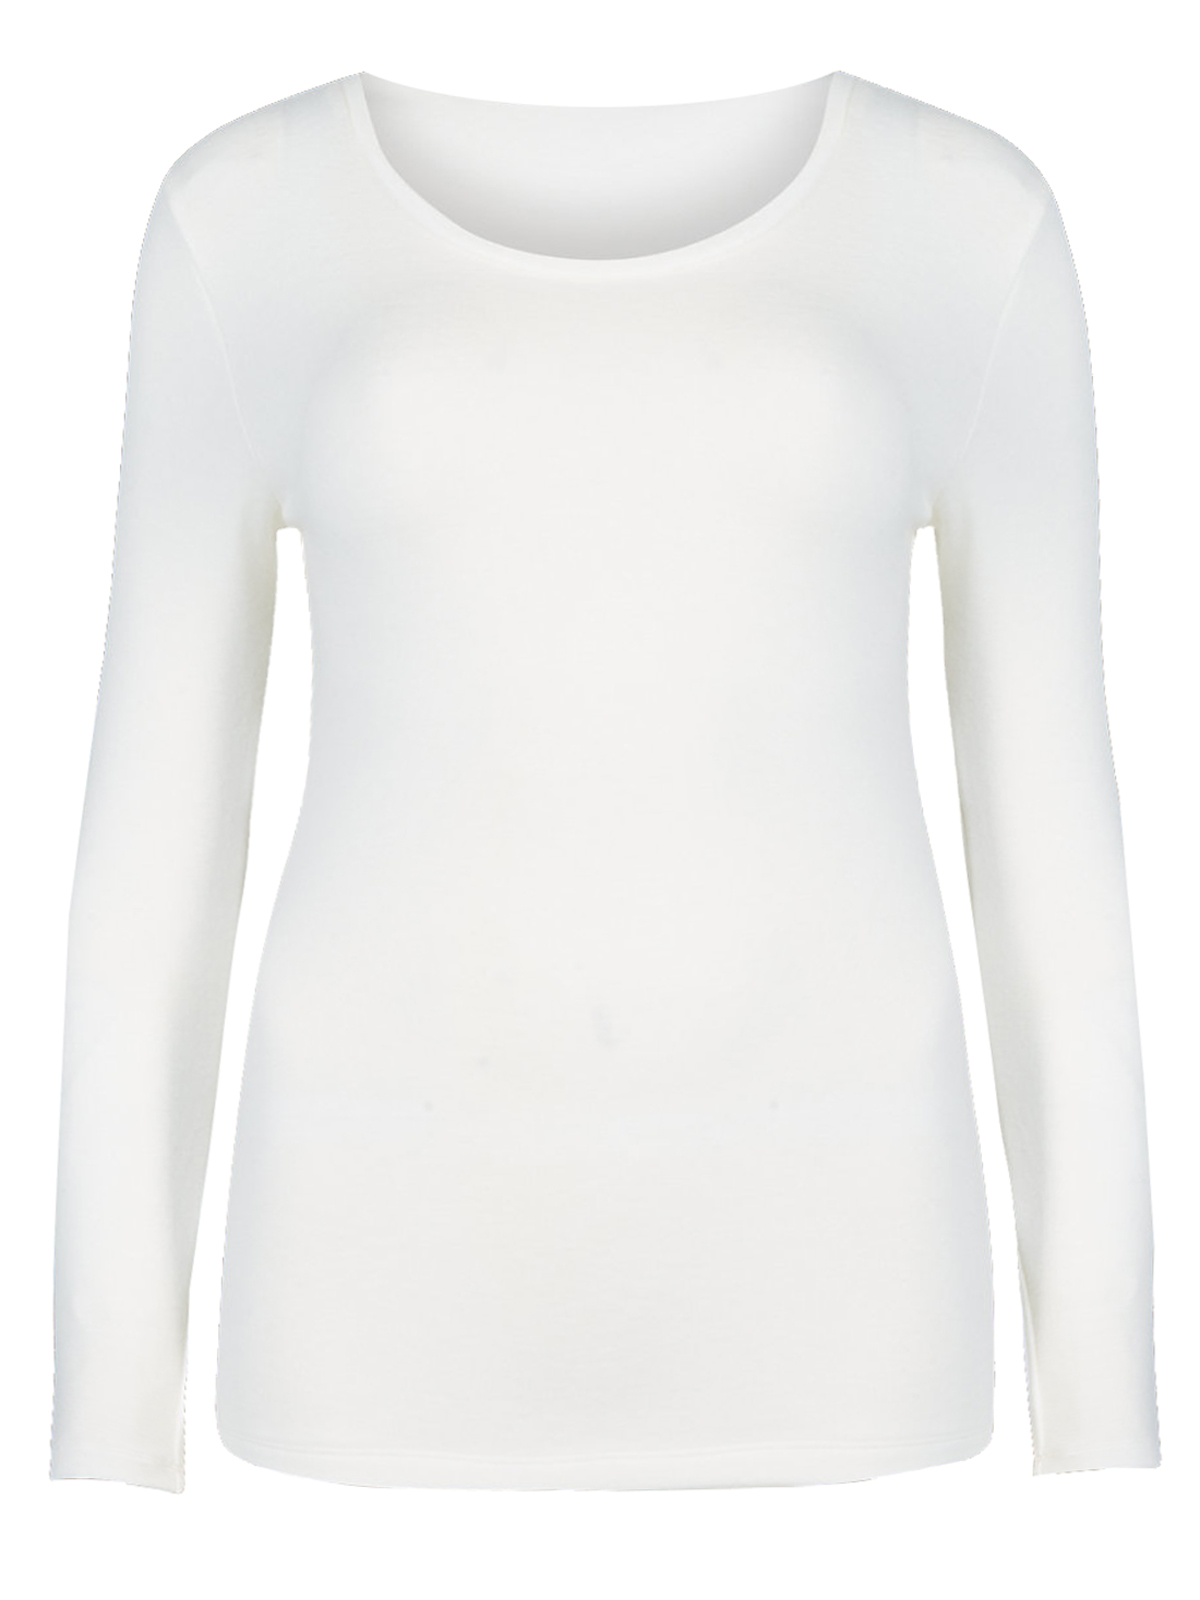 M&5 CREAM Brushed Heatgen Thermal Long Sleeve Top - Size 6 to 22